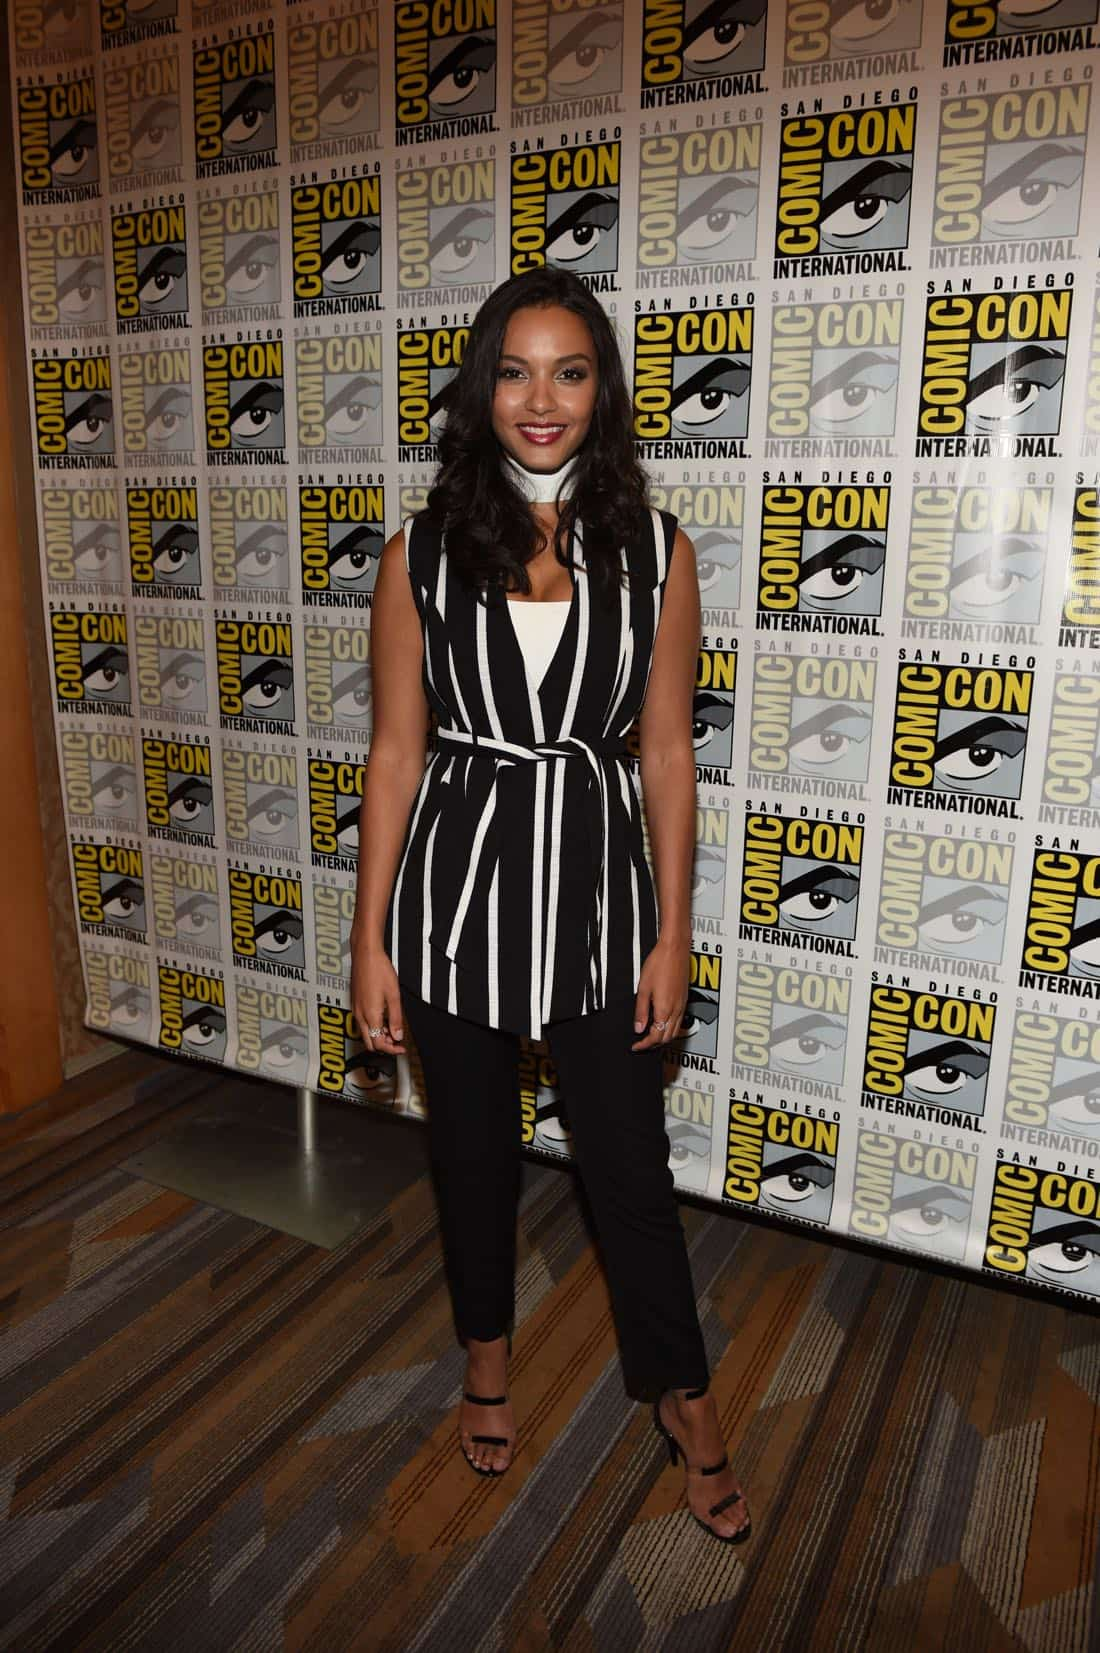 FOX FANFARE AT SAN DIEGO COMIC-CON © 2016: GOTHAM cast member Jessica Lucas during GOTHAM press room on Saturday, July 23 at the FOX FANFARE AT SAN DIEGO COMIC-CON © 2016. CR: Scott Kirkland/FOX © 2016 FOX BROADCASTING